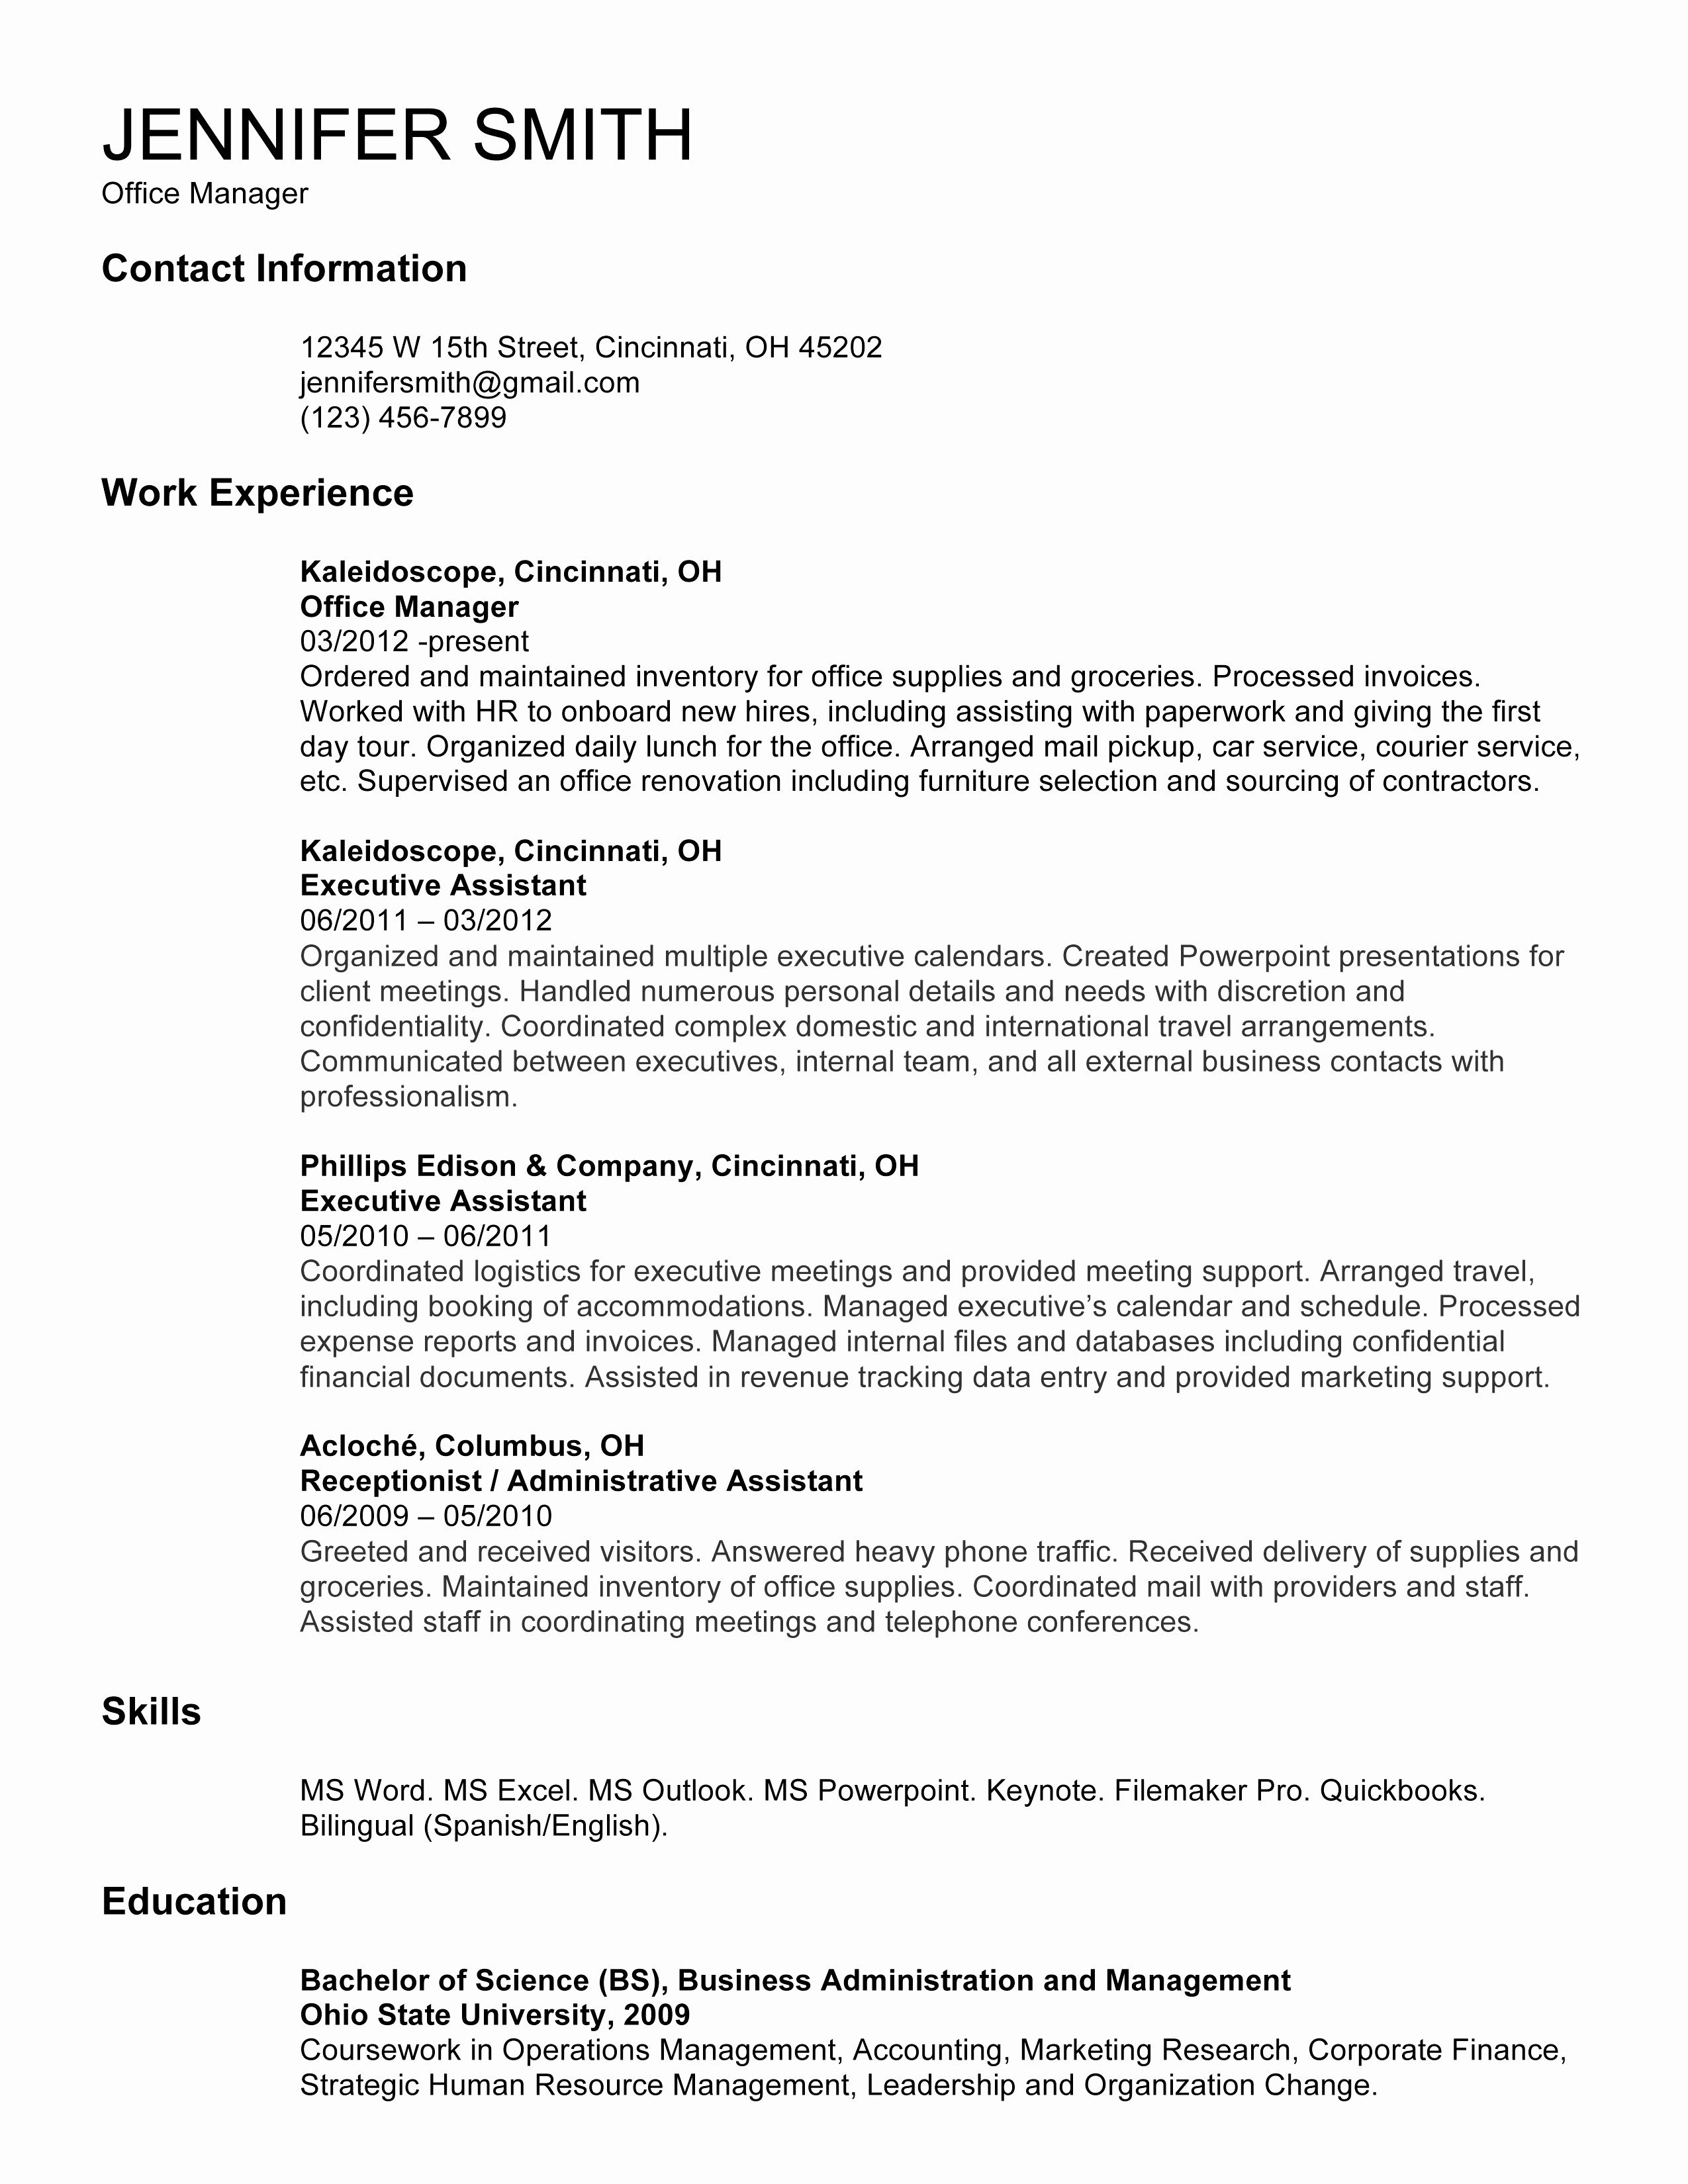 receptionist job description resume Collection-How To Make A Resume For A Receptionist Job Valid Fresh Reception Resume Luxury American Sample New Student 0d Where 4-i